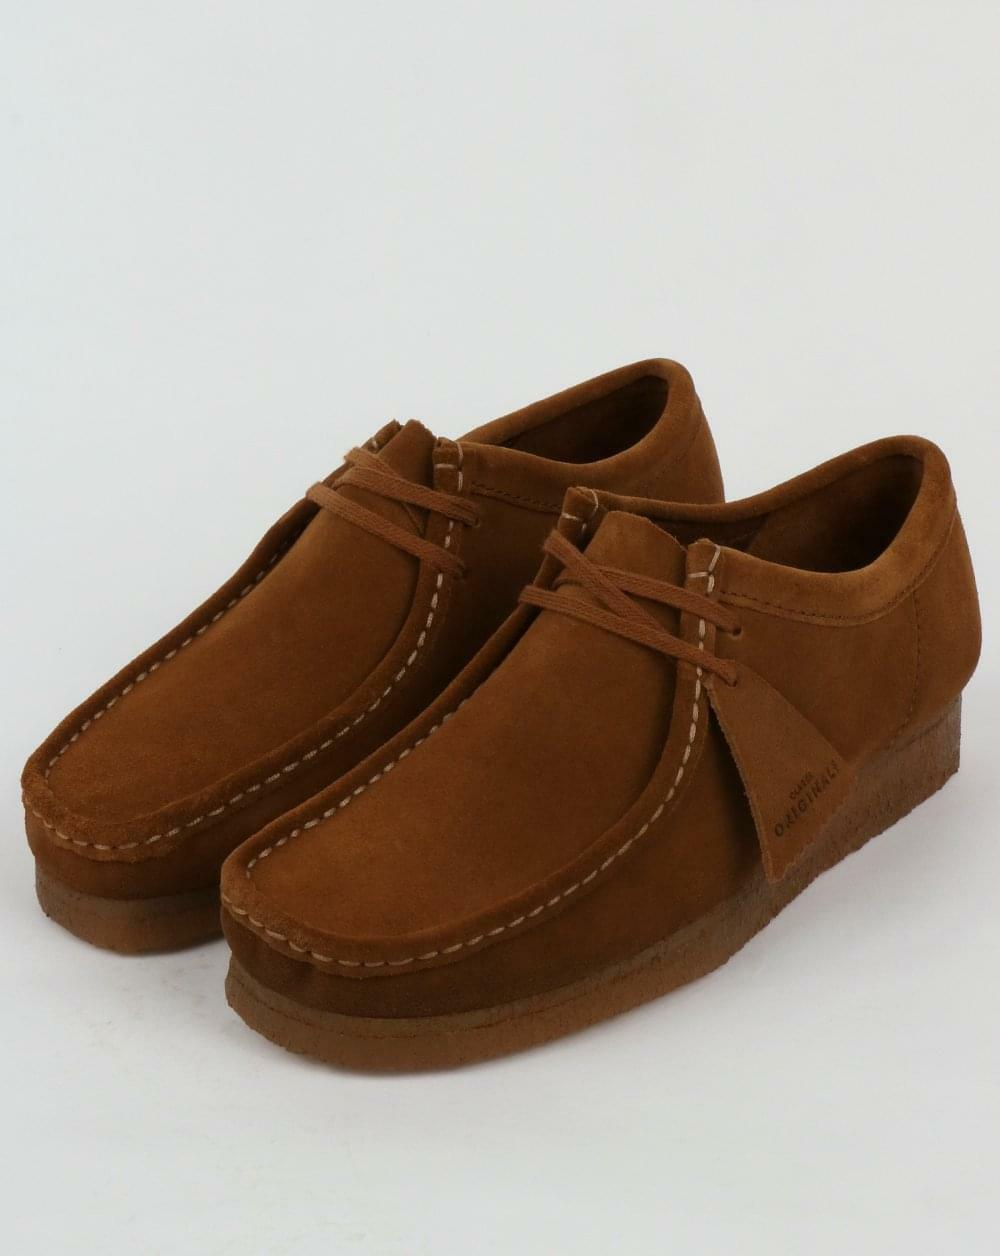 Clarks Originals Wallabee - Shoes in Cola Suede - Wallabee rich brown crepe sole moccasin 8c1d5a